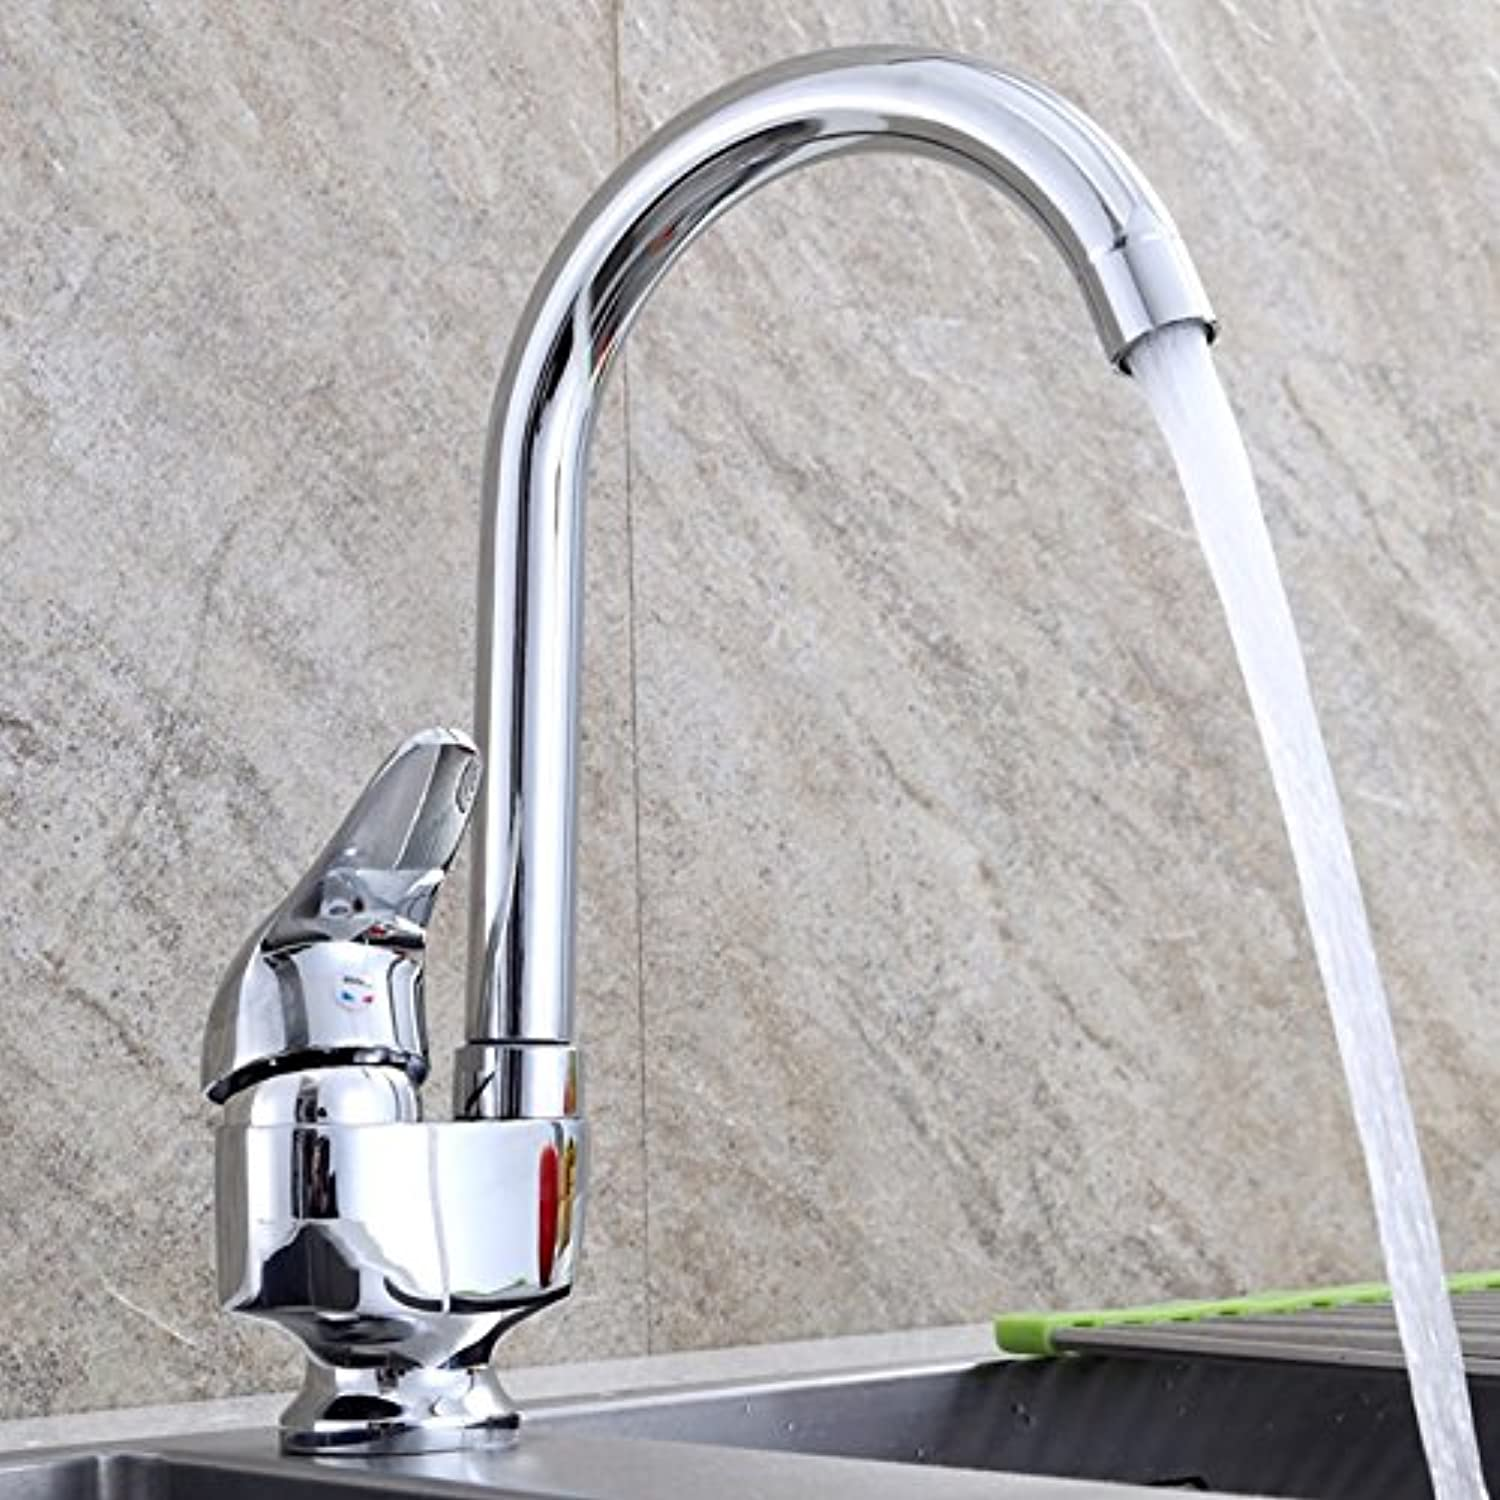 NewBorn Faucet Water Taps Hot And Cold Water The Copper Kitchen Water Tap Dish Washing Basin Cold Water Slot One Cold Water Tap To redate